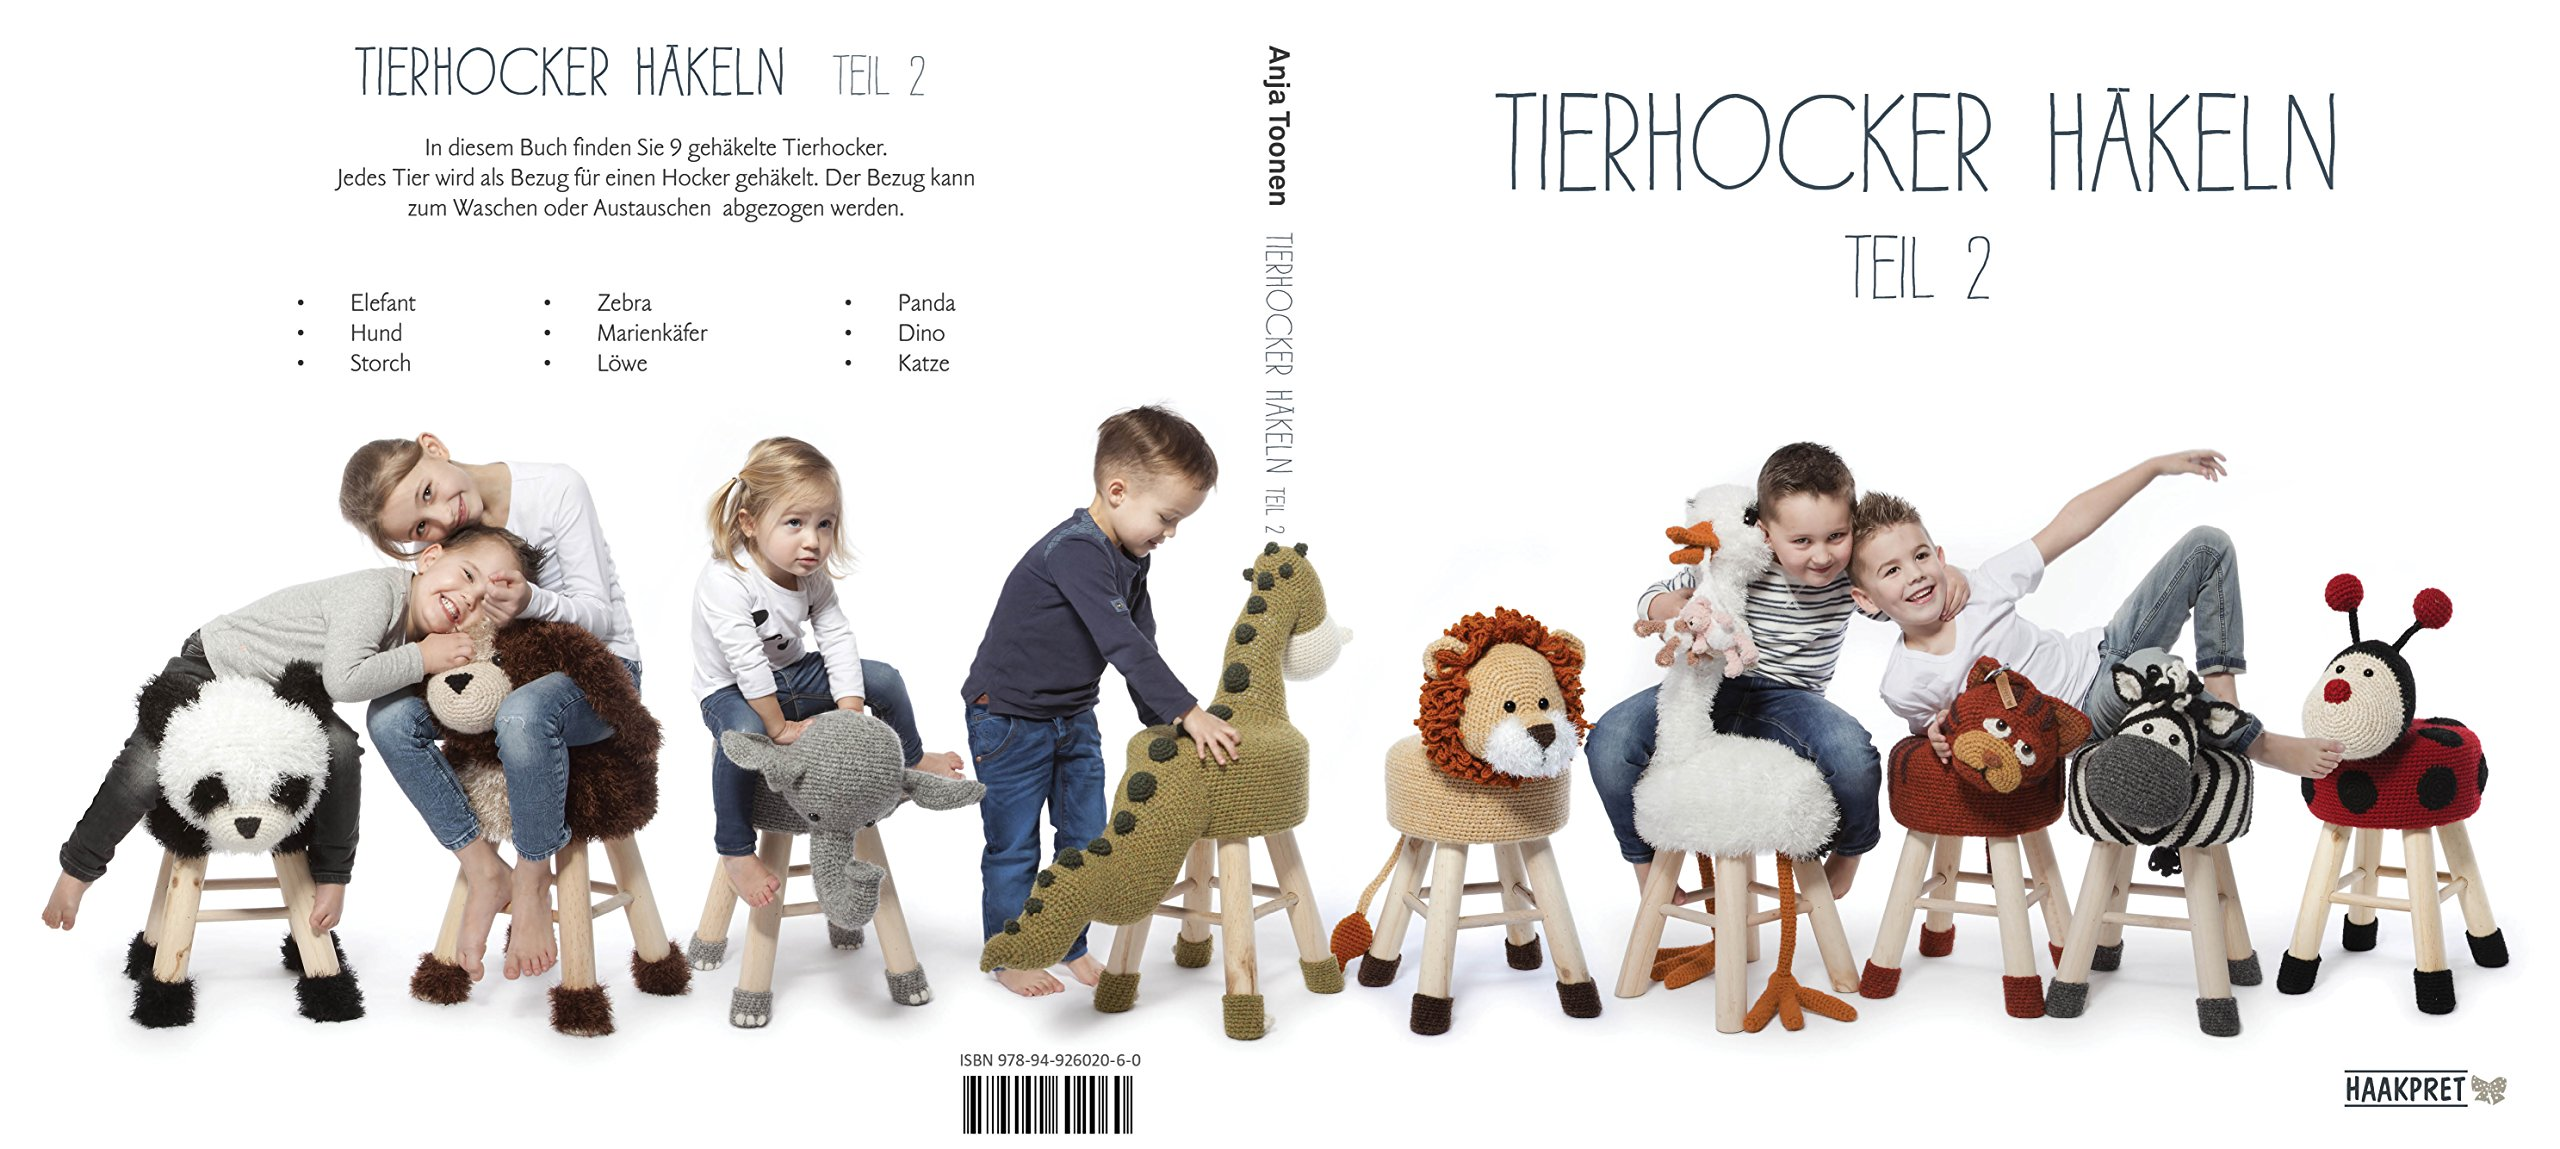 Tierhocker häkeln teil 2: Amazon.co.uk: Anja Toonen: 9789492602060 ...